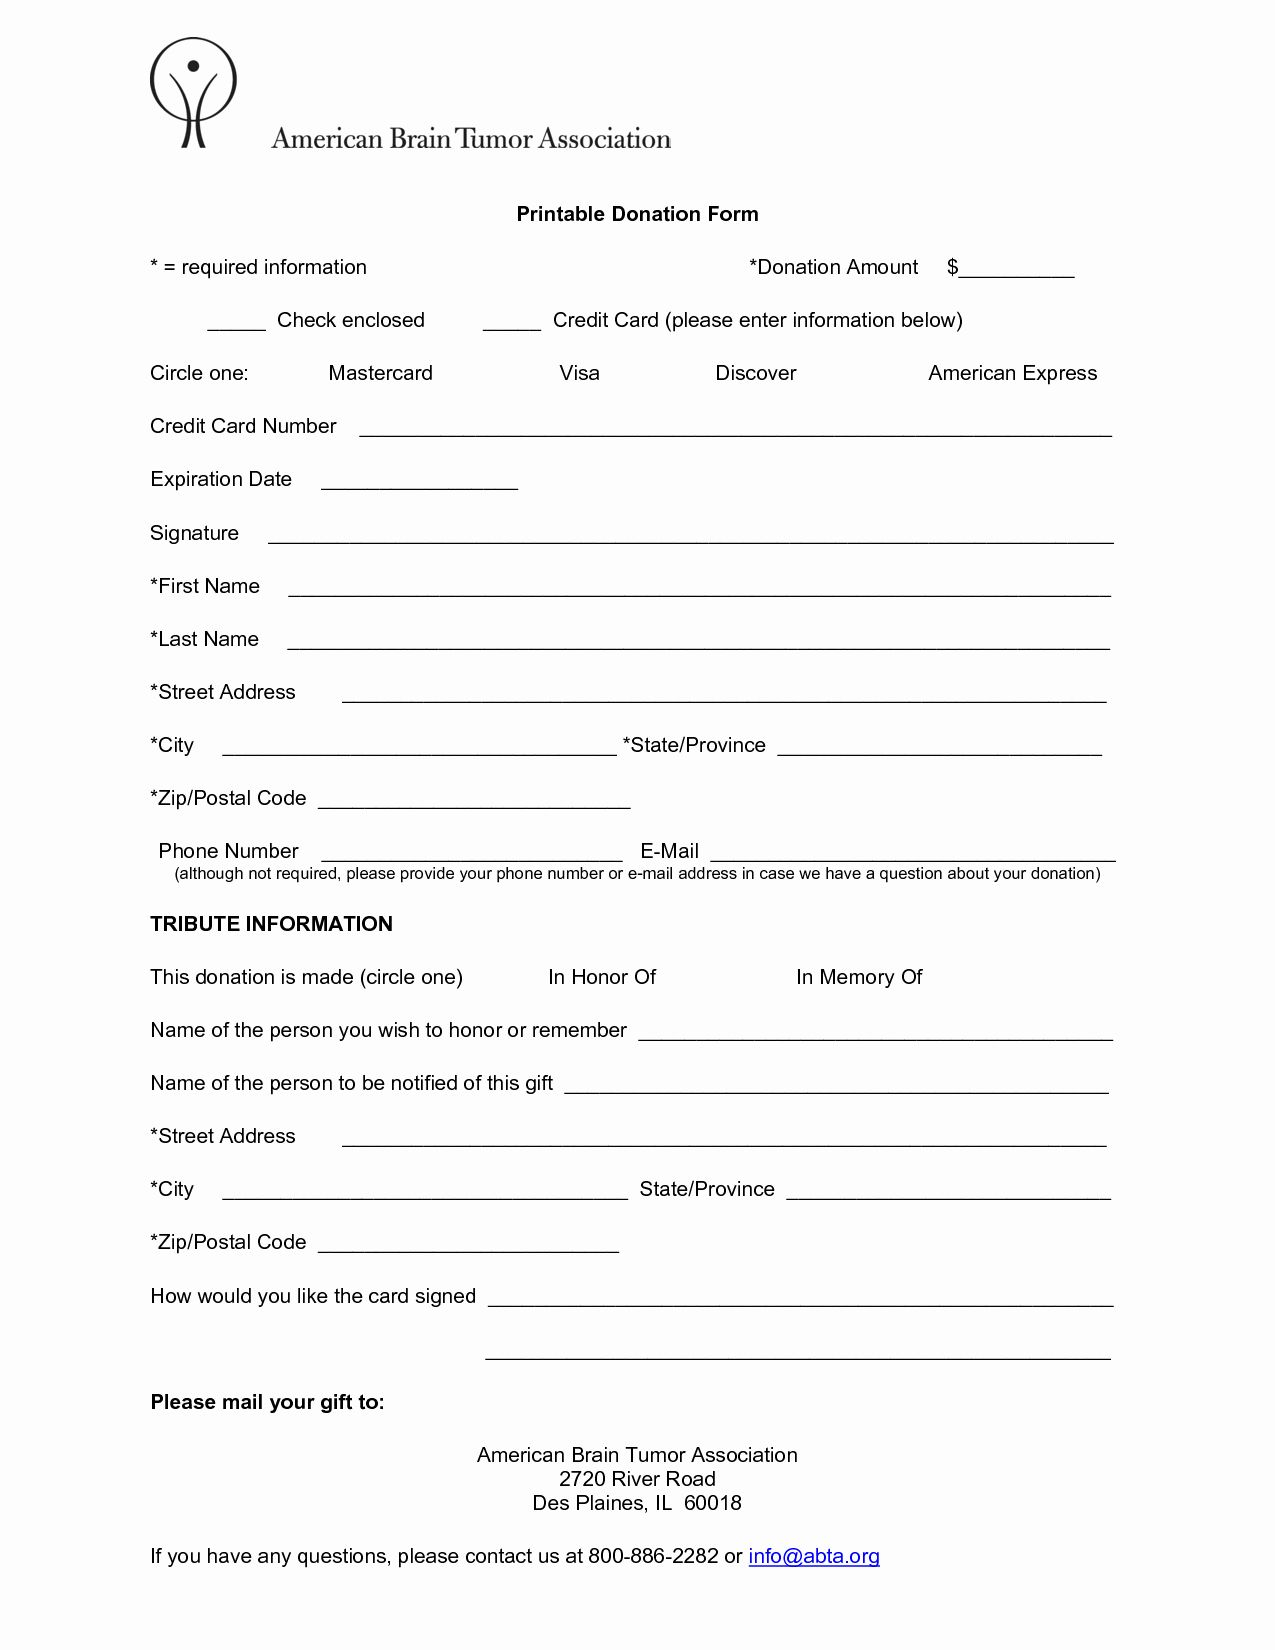 Donation Form Template Word Inspirational 6 Free Donation Form Templates Excel Pdf Formats Donation Form Donation Request Form Word Template